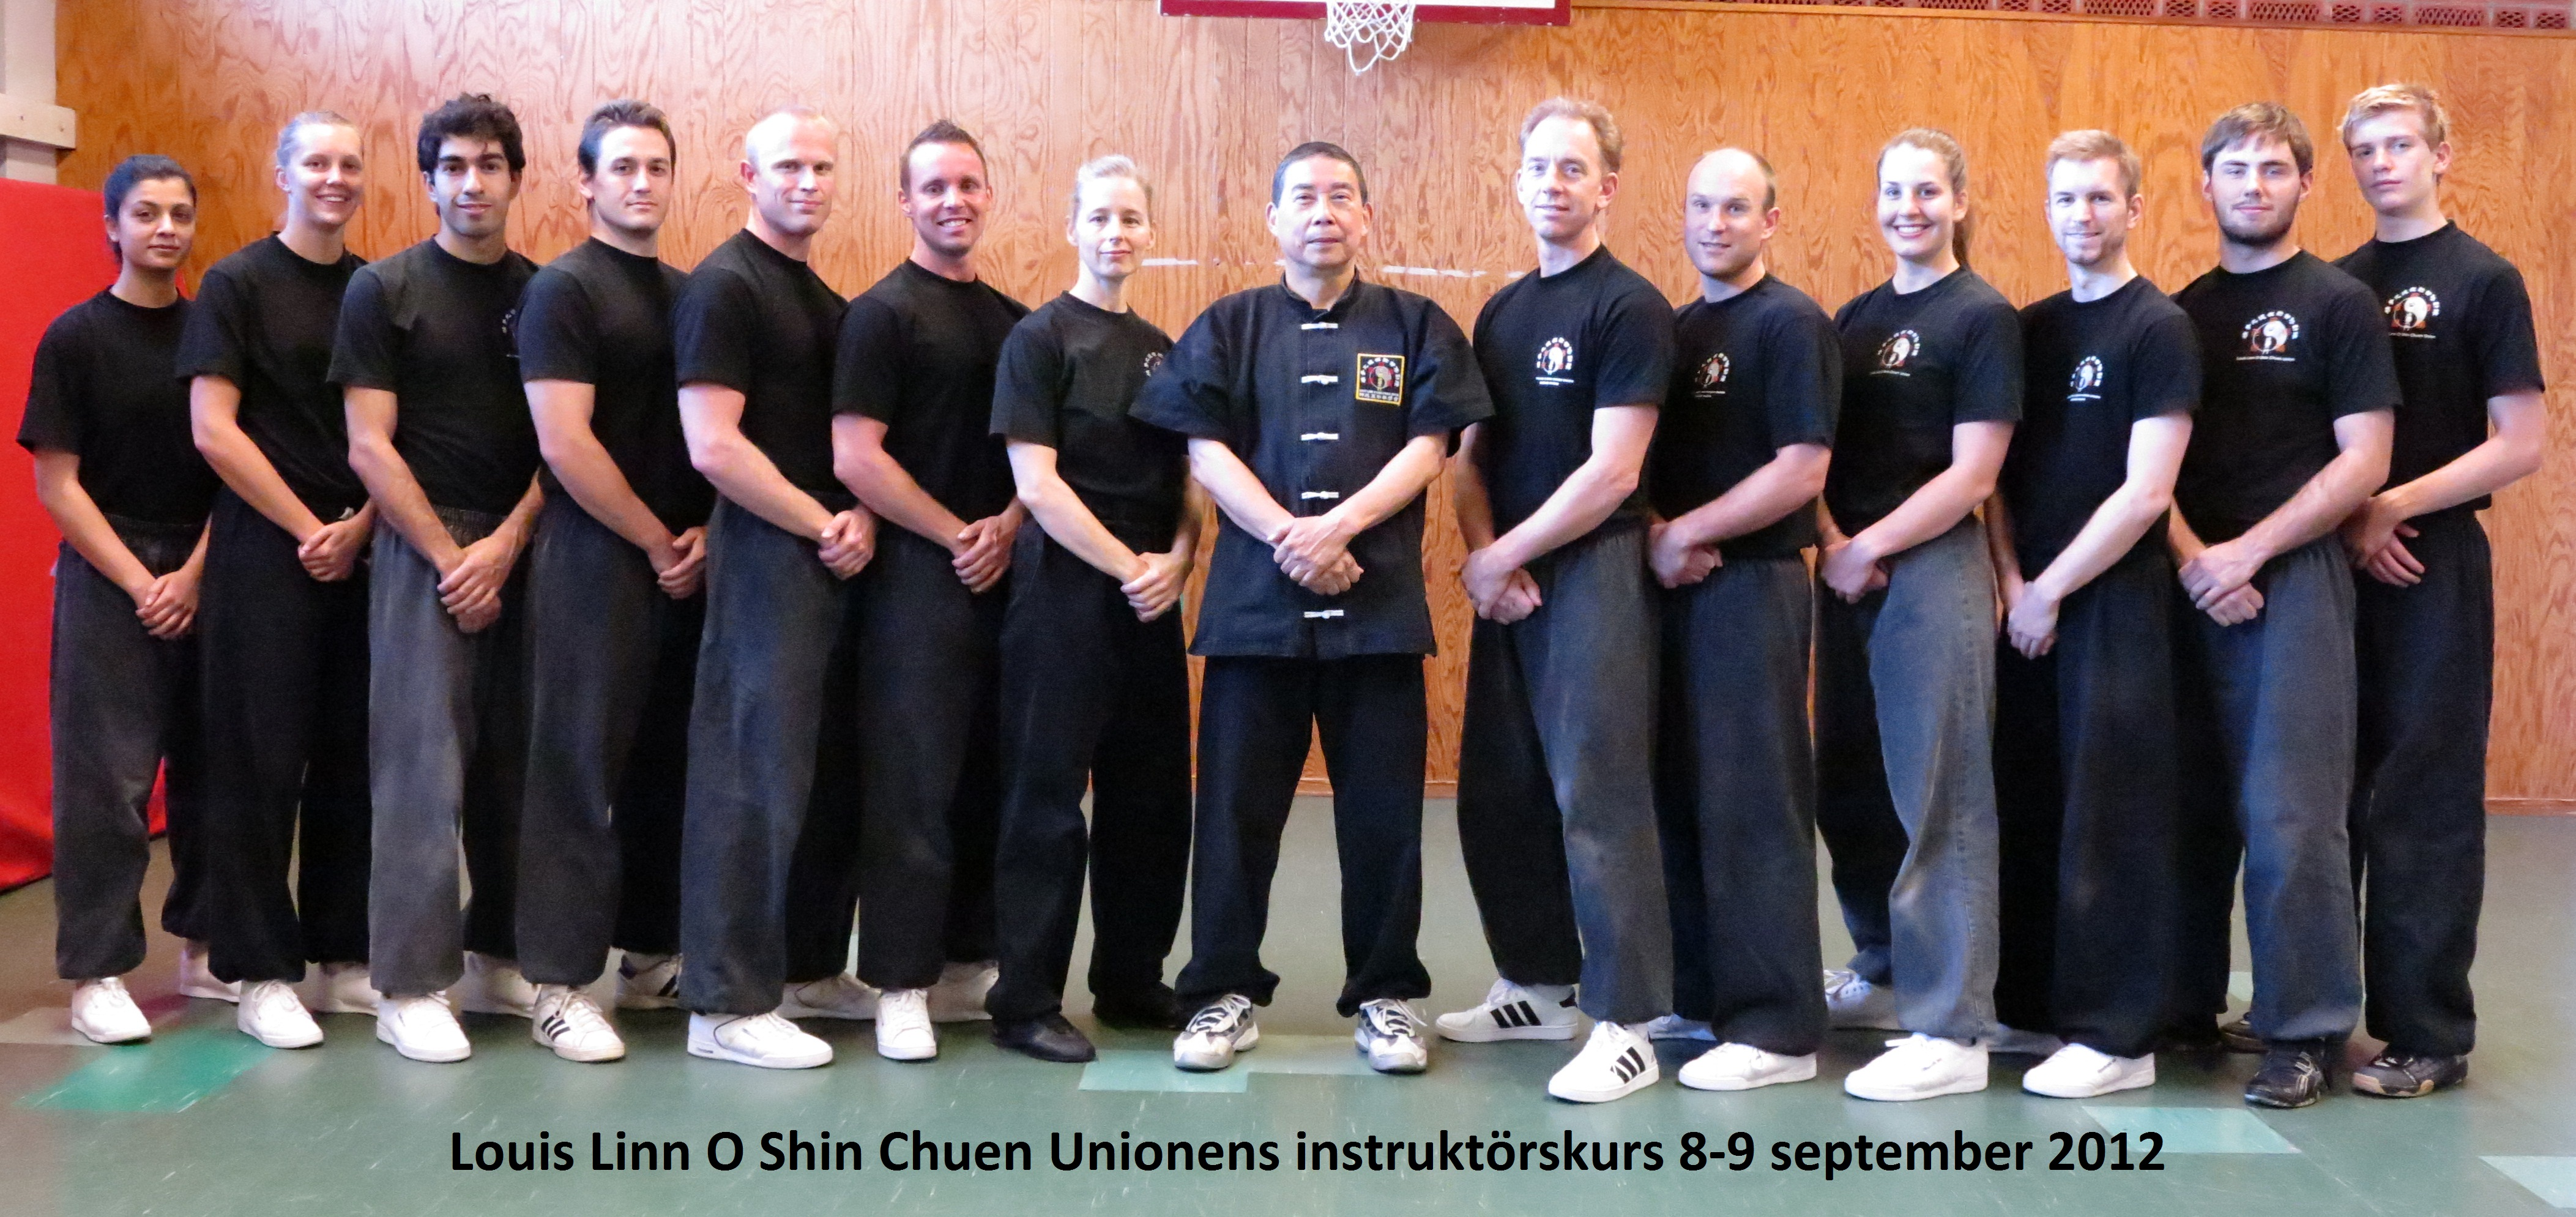 The instructor group of Louis Linn O Shin Chuen Union autumn 2012